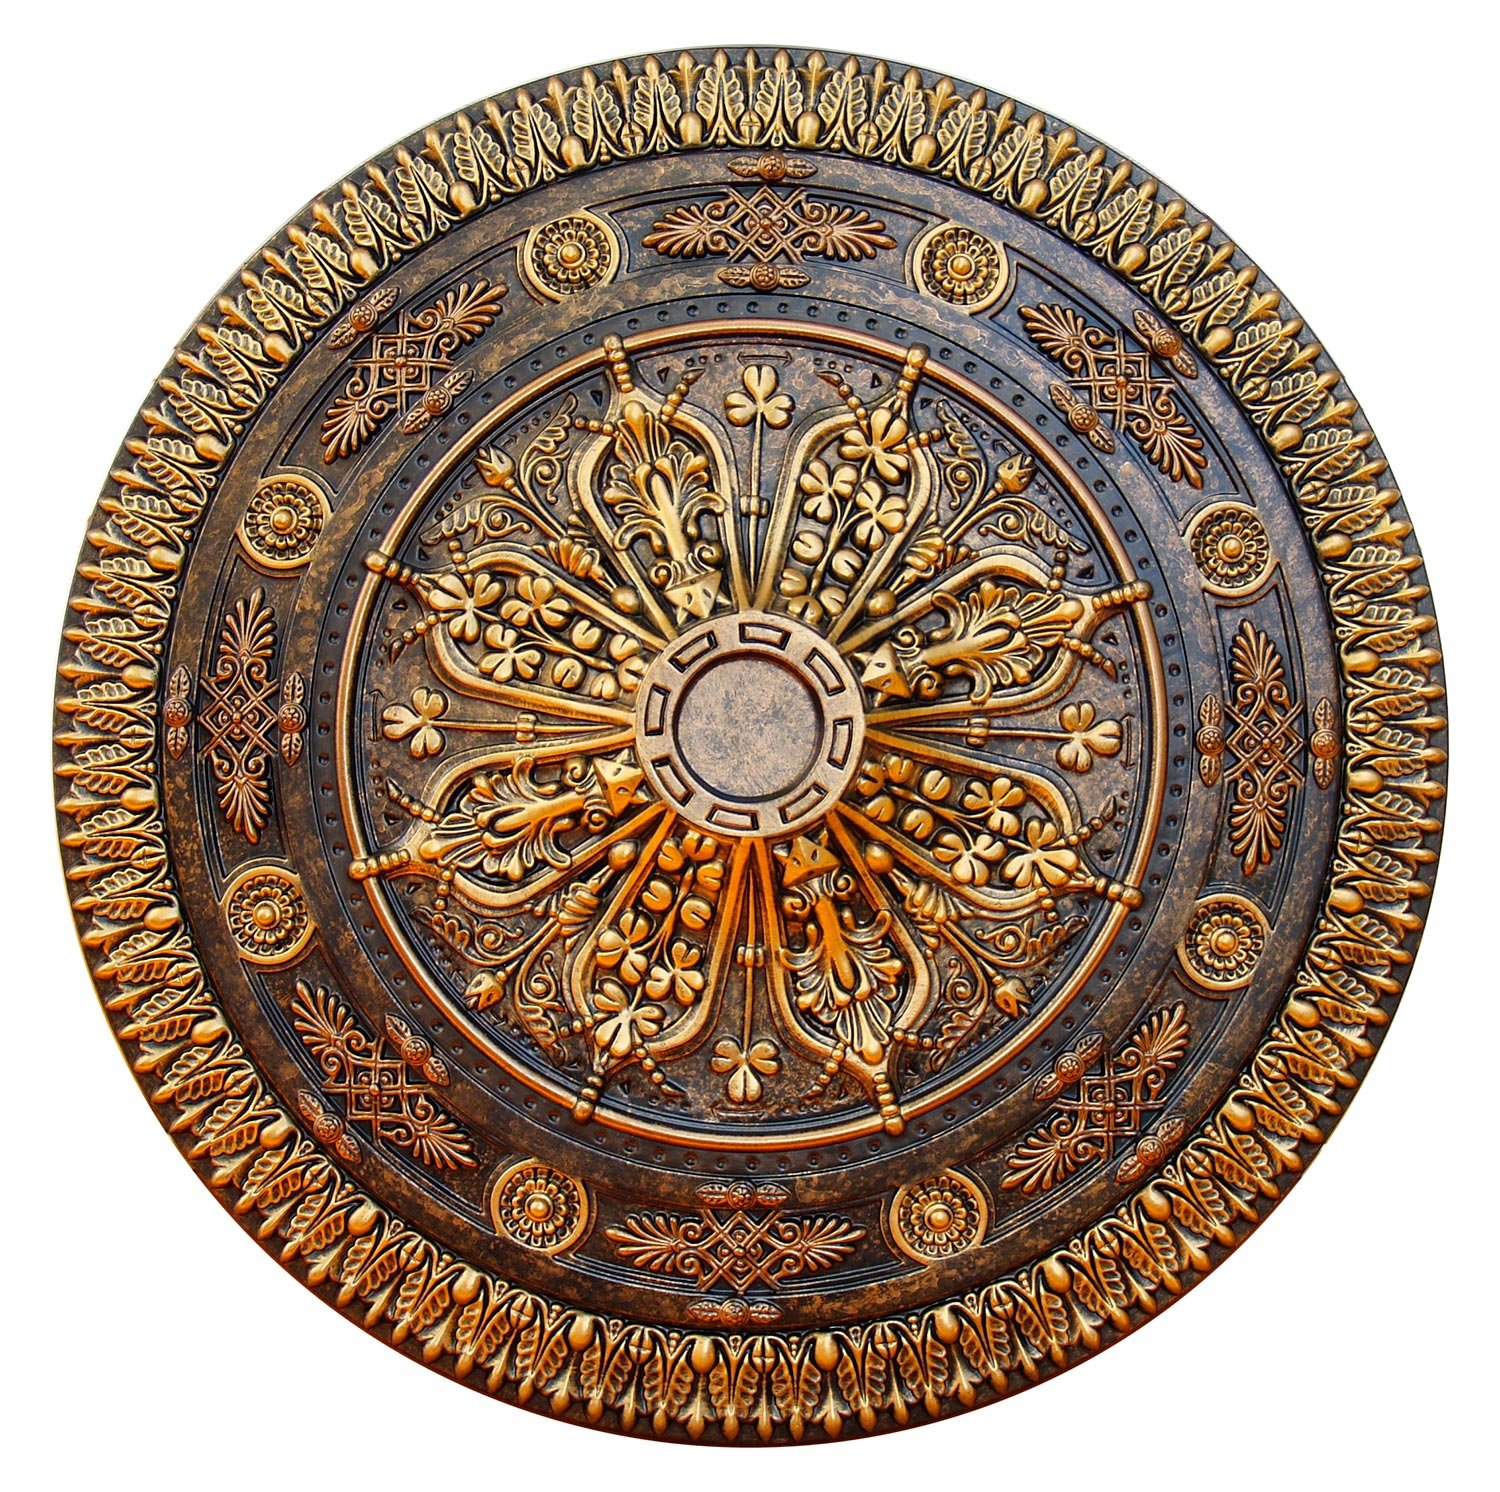 Fine Art Deco Arabic Caprice Hand Painted Ceiling Medallion 37-1/2 In. Finished in Bronze and Gold by Fine Art Deco by Fine Art Deco